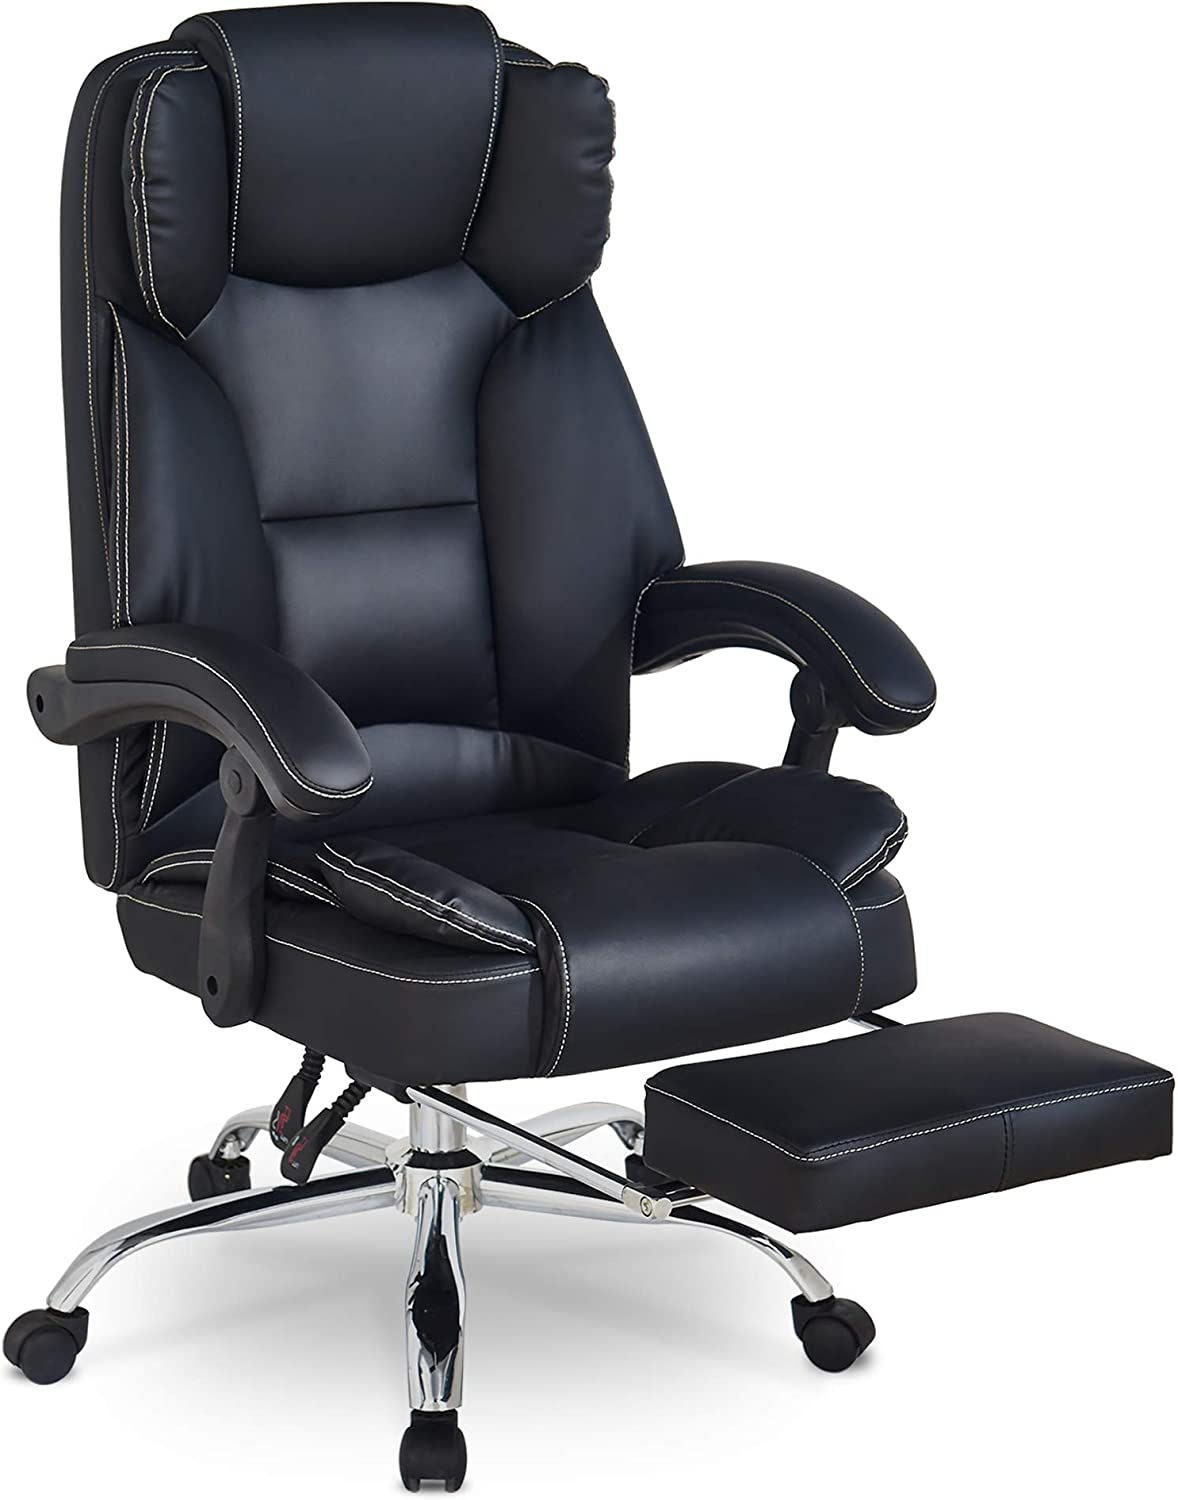 Office Chairs,Executive Office Desk Chair,Computer Desk Chair Ergonomic Chair for Office High Back Reclining Office Chair with Footrest,Adjustable Height Leather Computer Chairs on Wheels